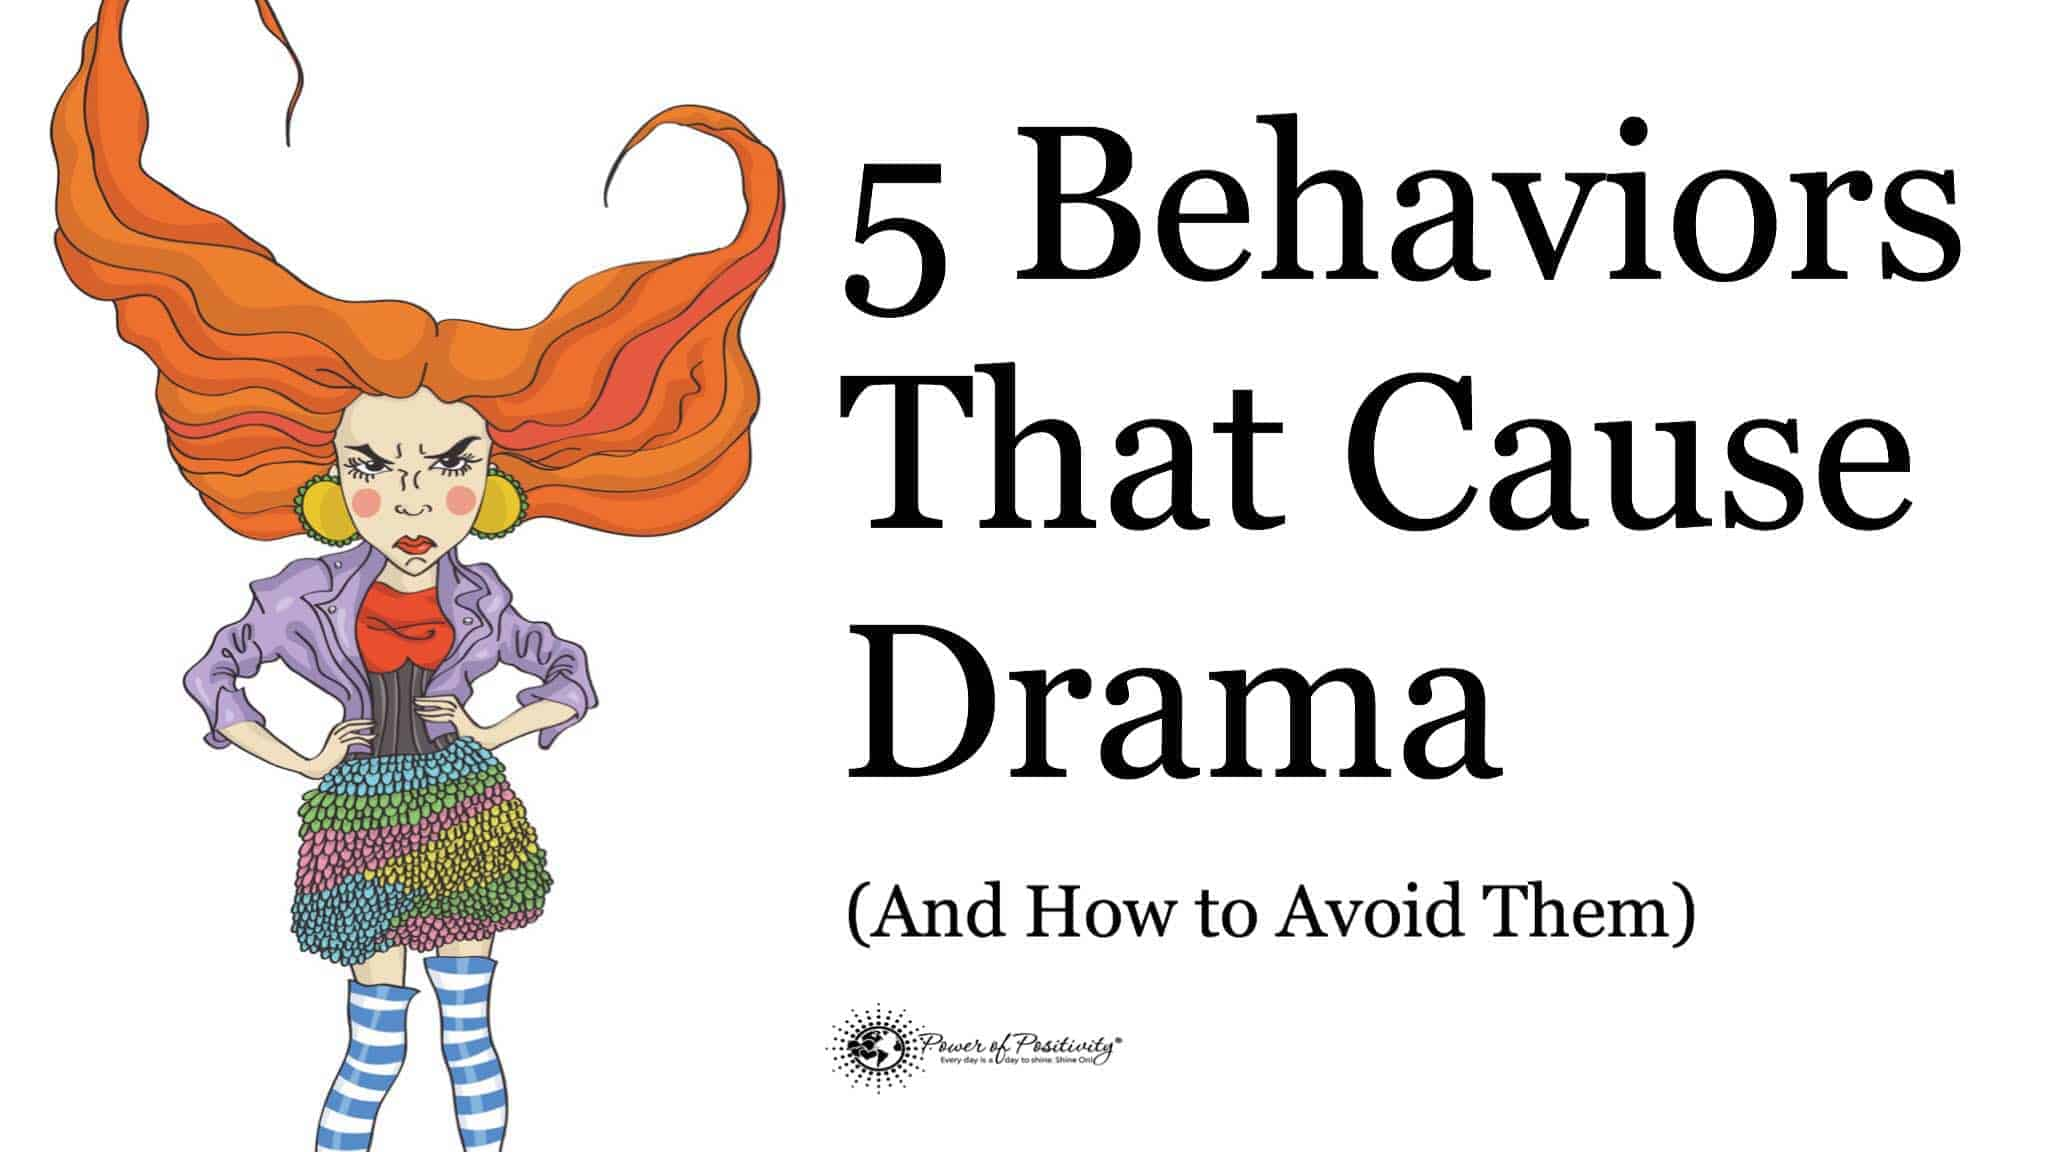 5 Behaviors of Dramatic People (And How to Avoid Having Them)